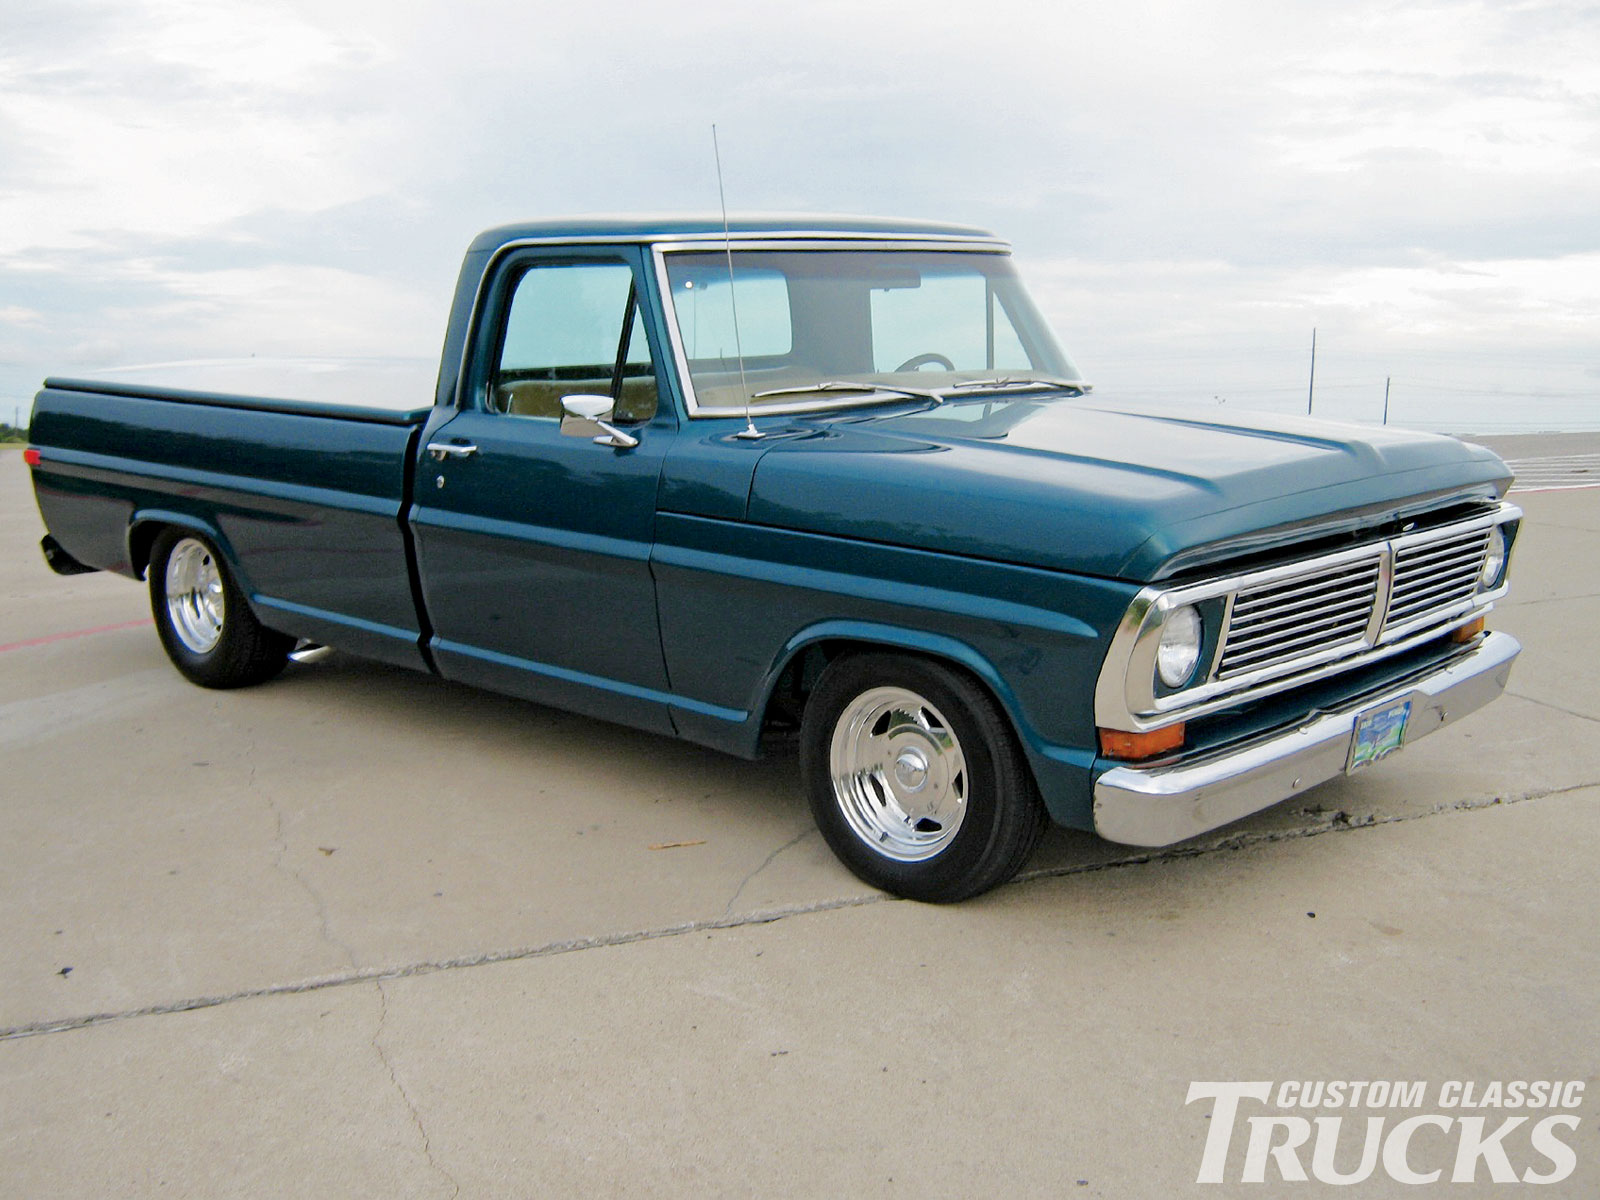 hight resolution of 1002cct 01 o 1970 ford f100 pickup truck restored vintage truck